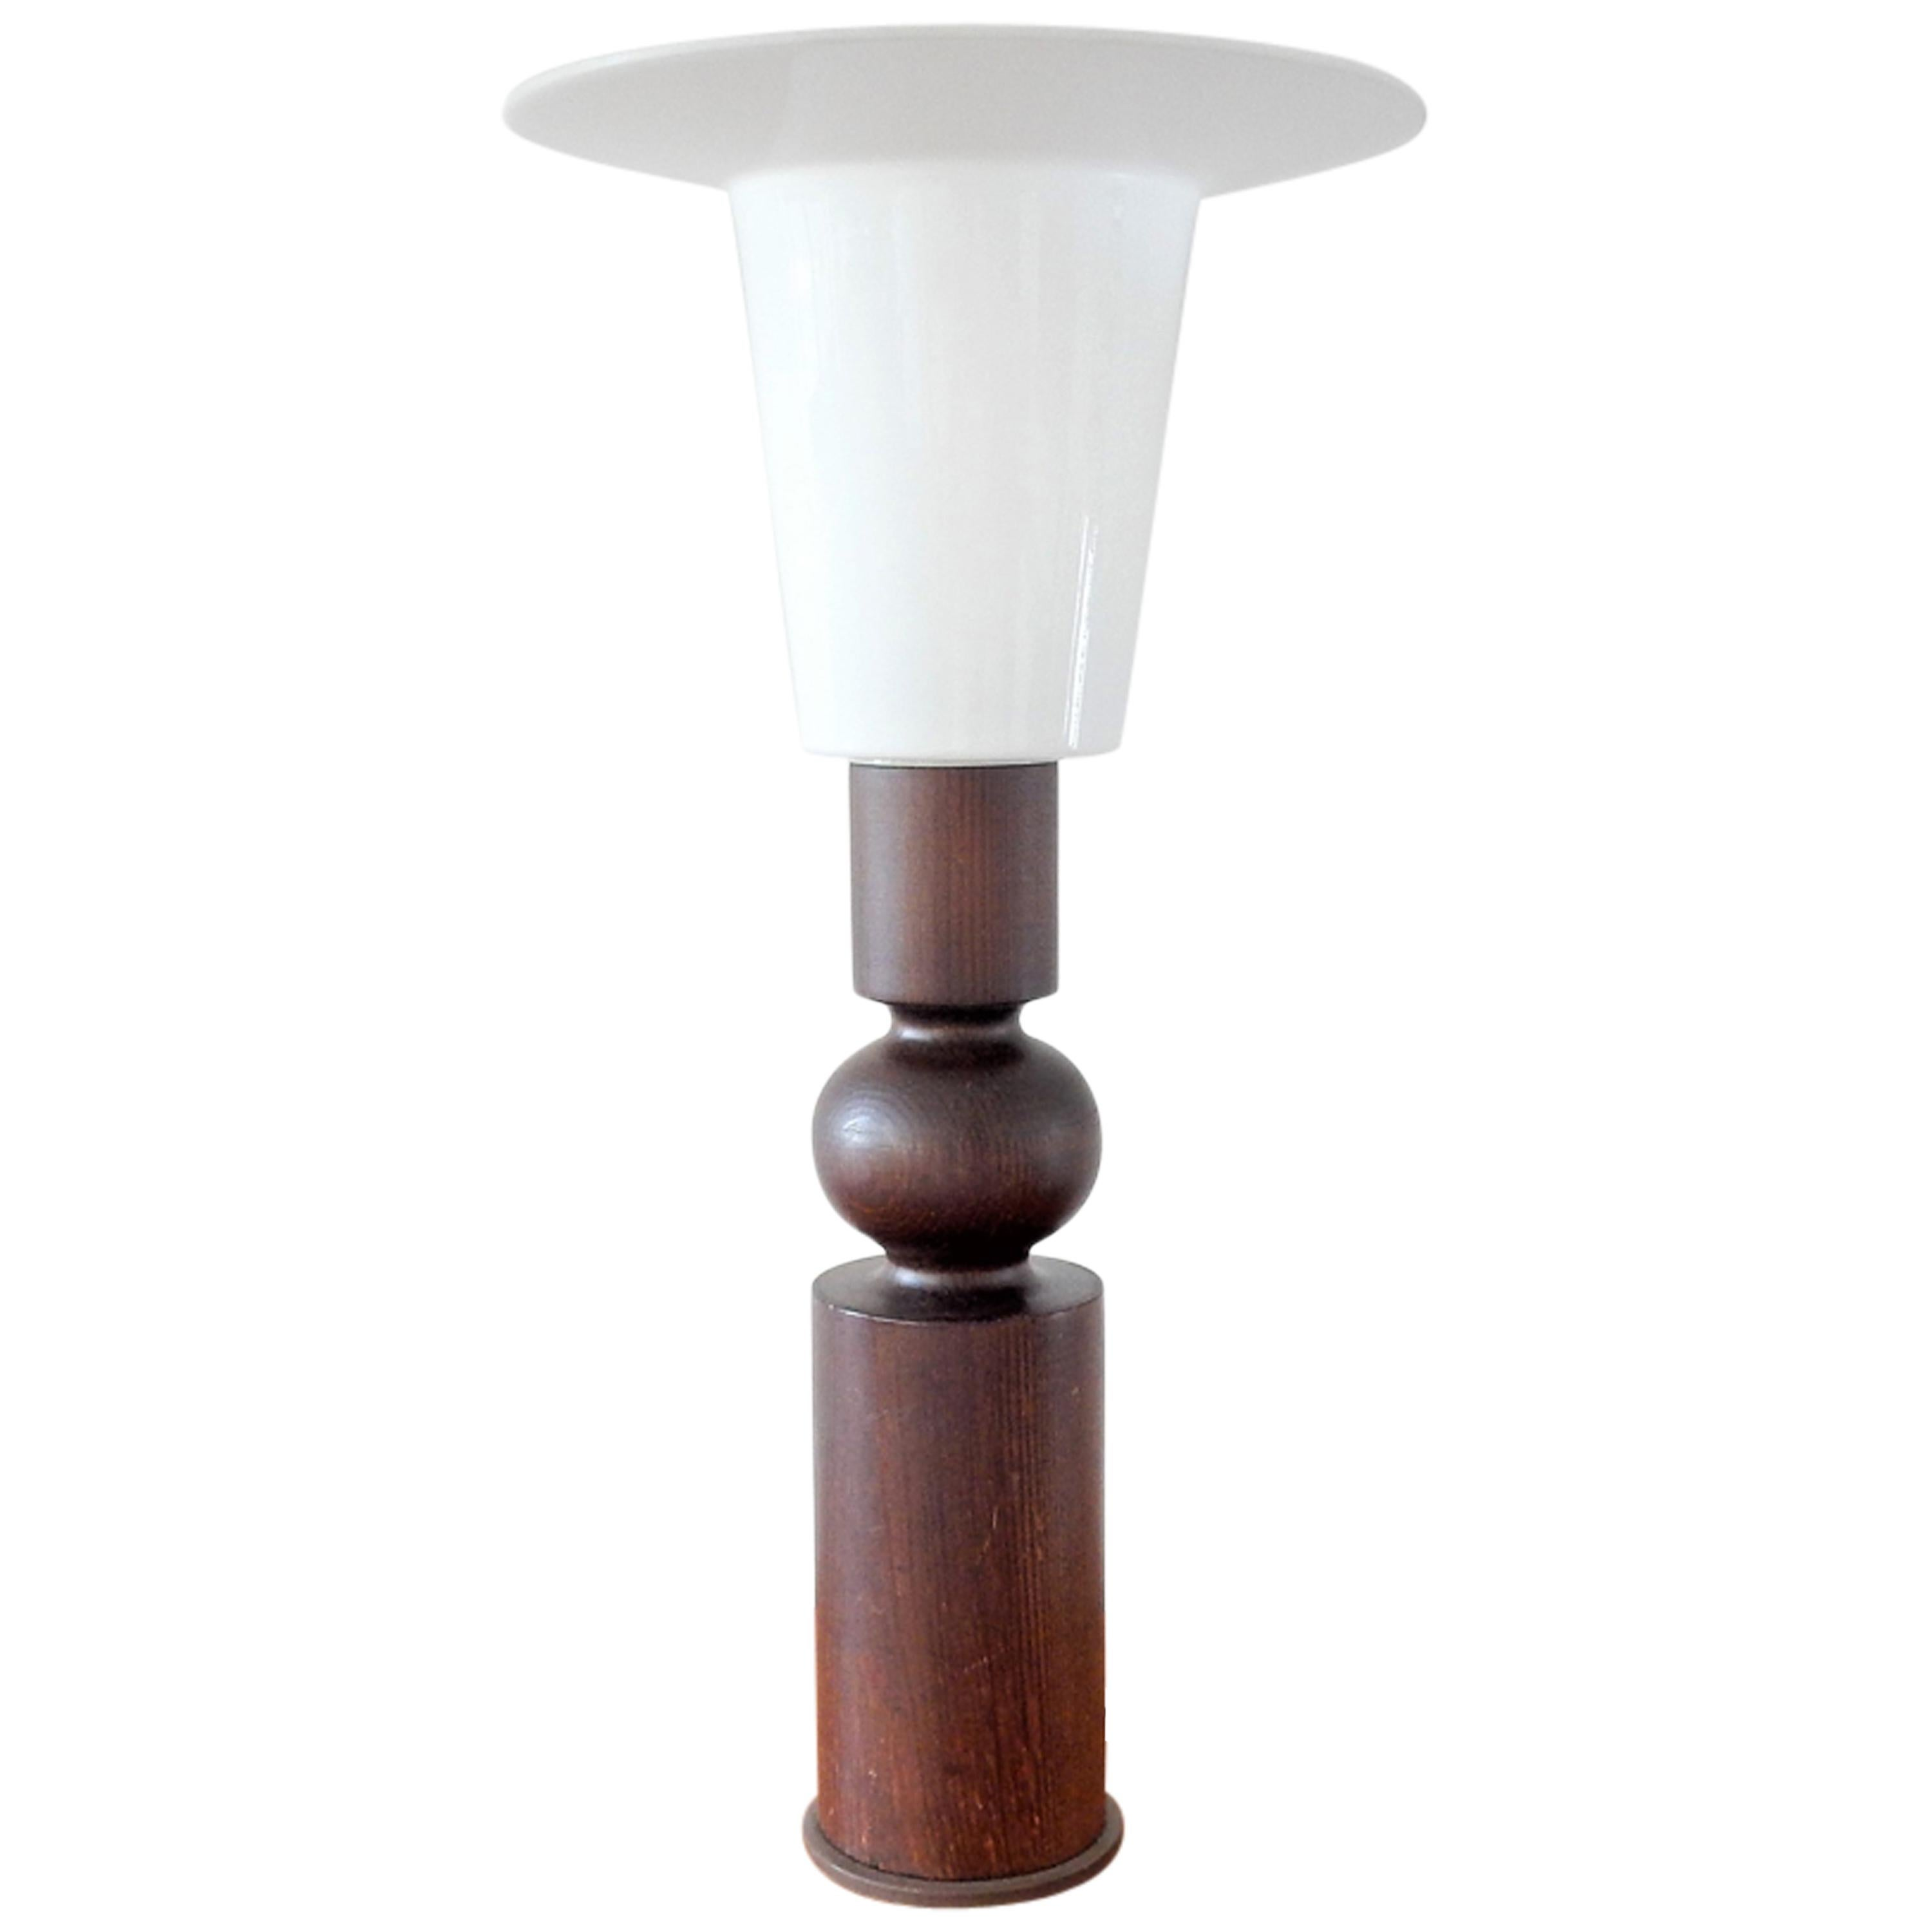 Table Lamp by Uno & Östen Kristiansson for Luxus, Sweden, 1970s-1980s